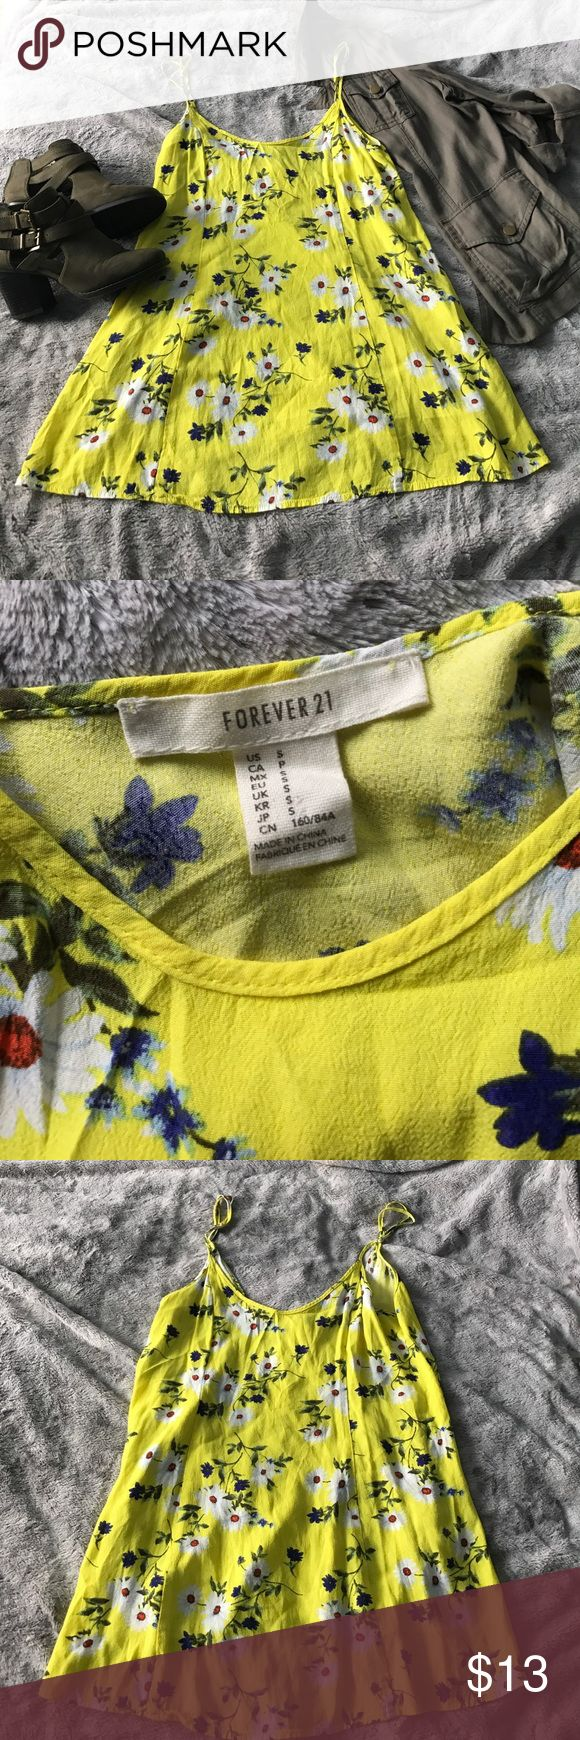 Yellow daisy Cami dress Lovely yellow daisy dress. Size small from forever 21 in great condition perfect for a nice summer day. Forever 21 Dresses Mini